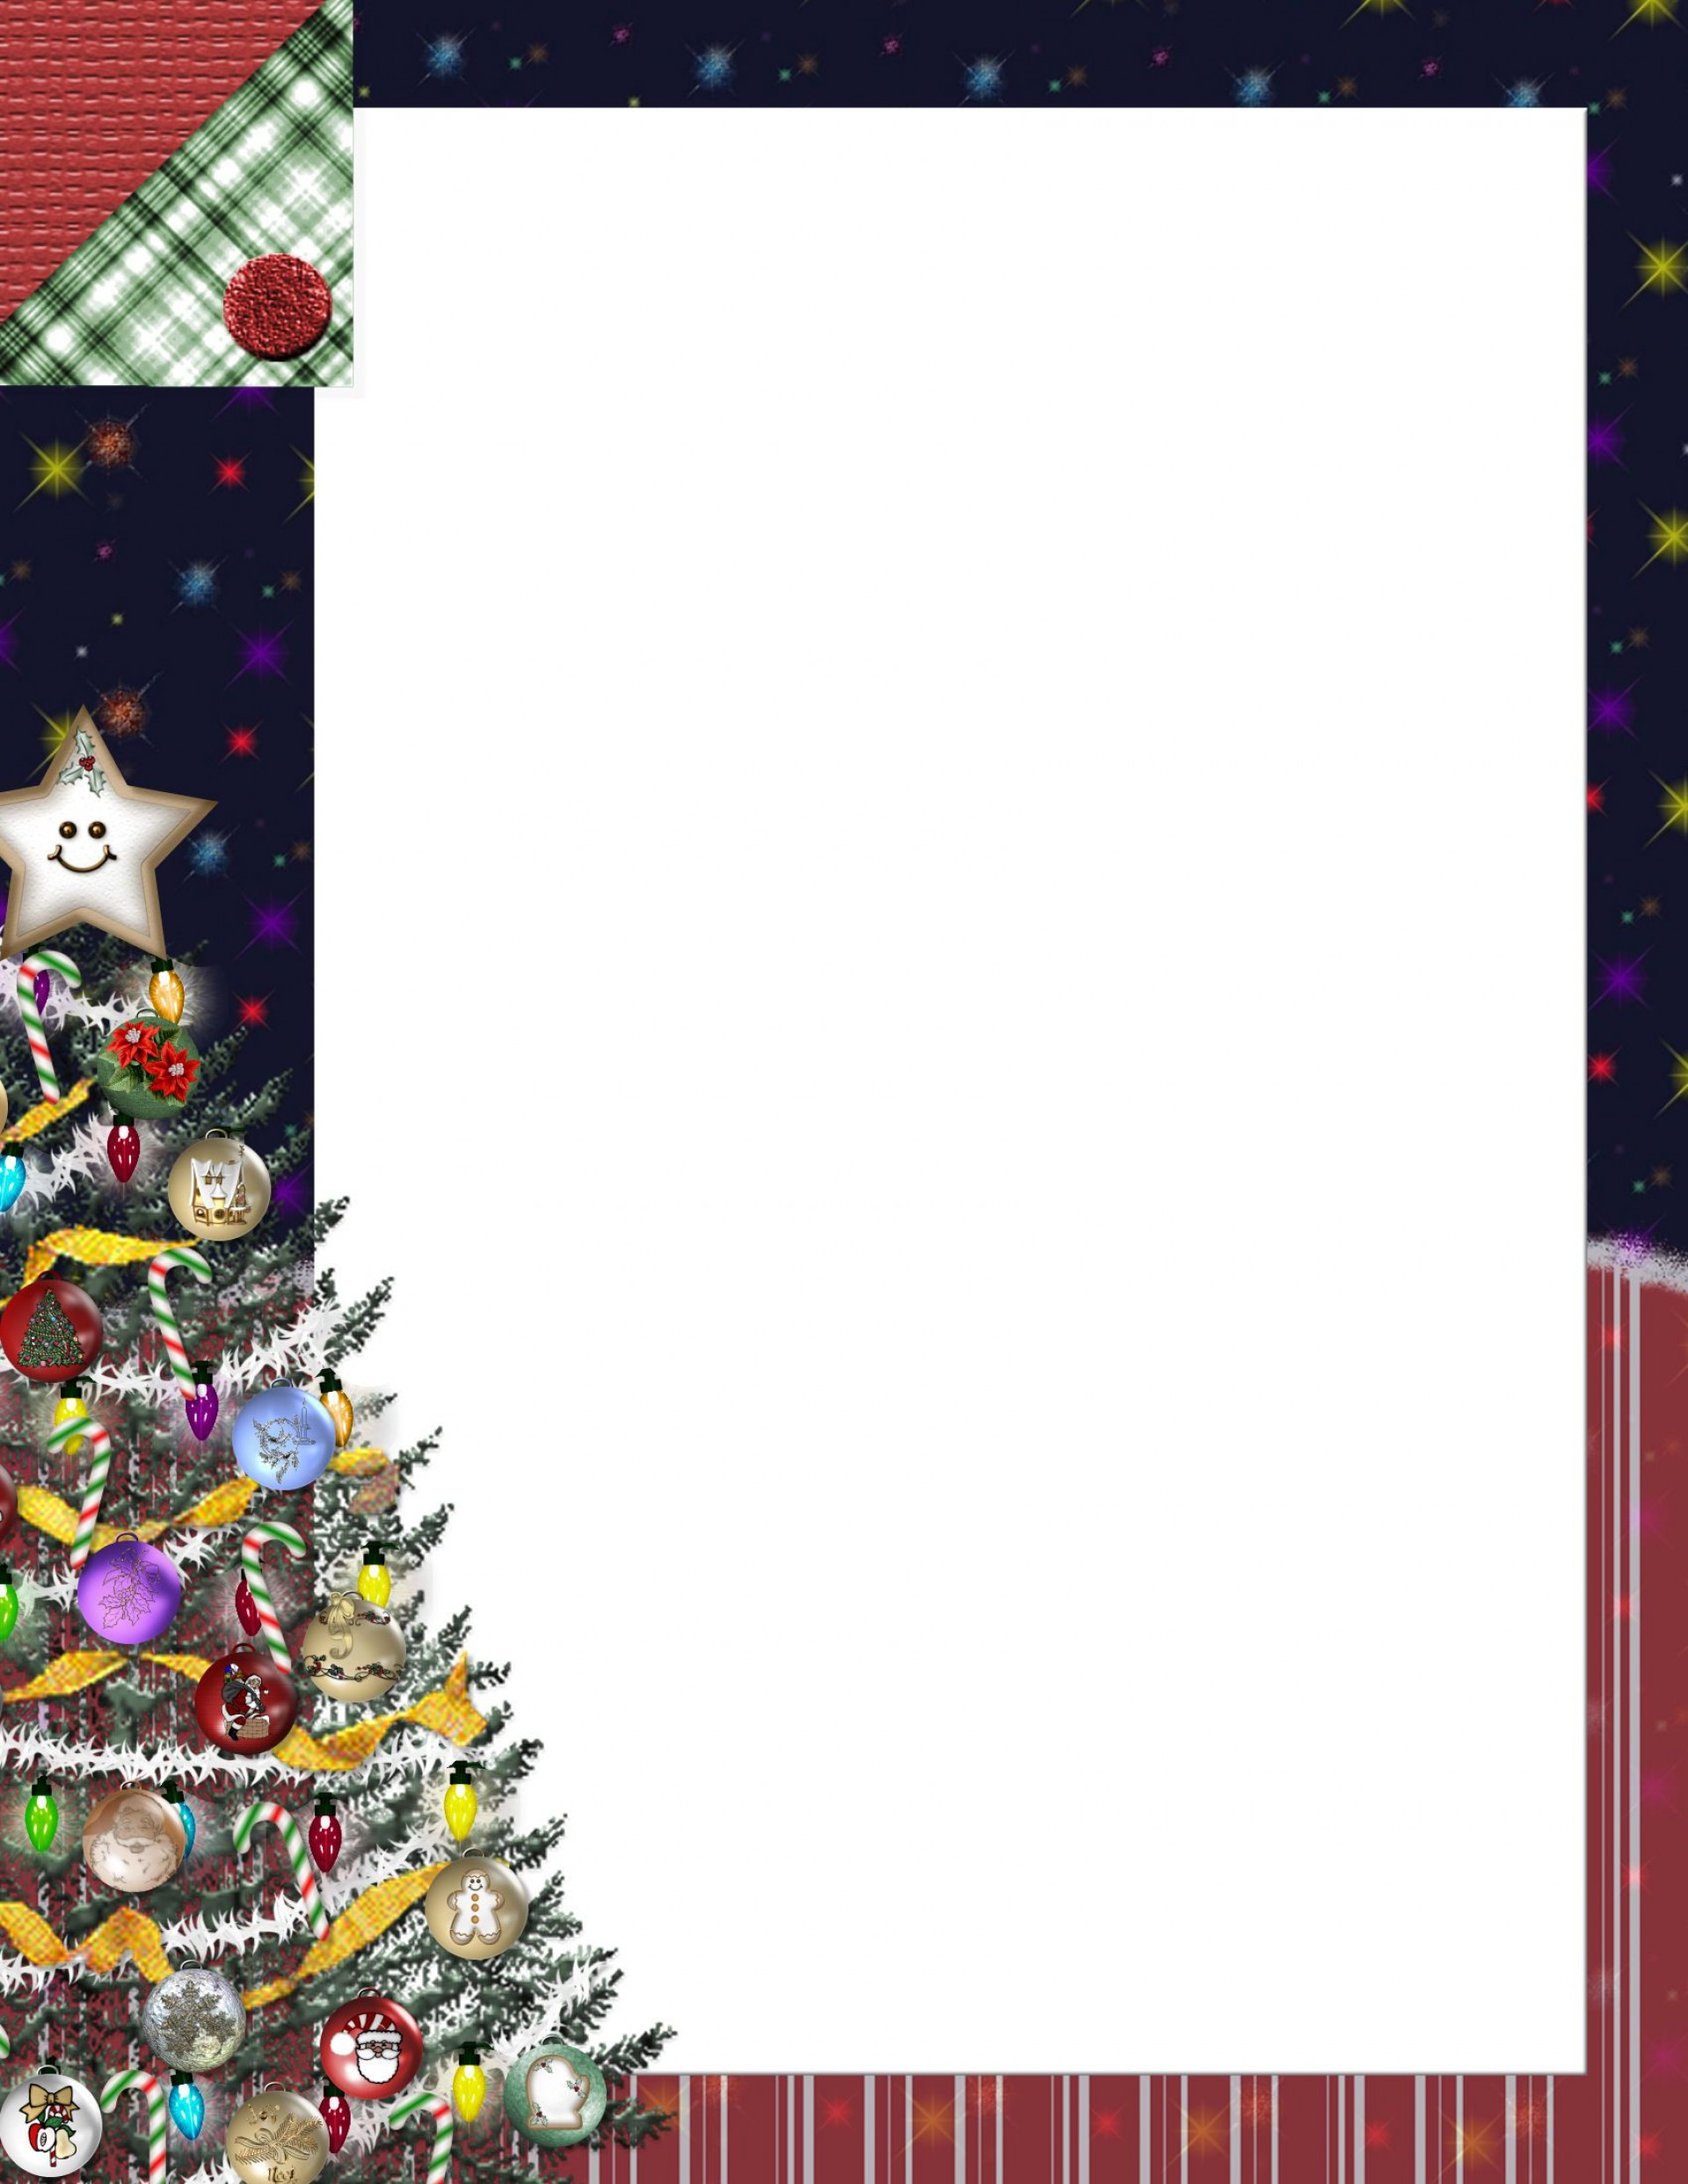 006 Fantastic Free Christma Template For Word Example  Holiday Party Invitation Recipe Card Printable Stationery1920